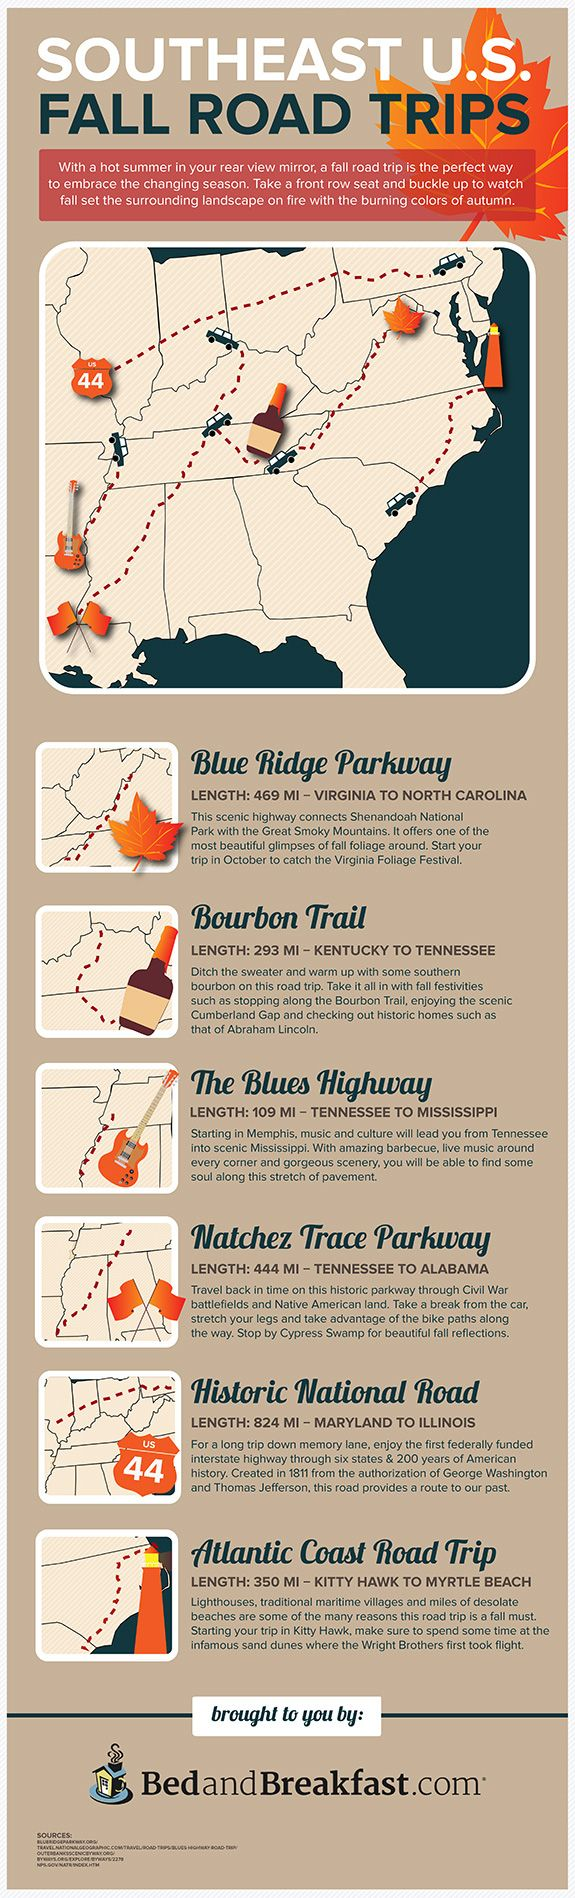 Fall Road Trip Ideas [Infographic]  Explore 5 unique road trip routes in the South East U.S., from a bourbon tour to the Blues Highway!